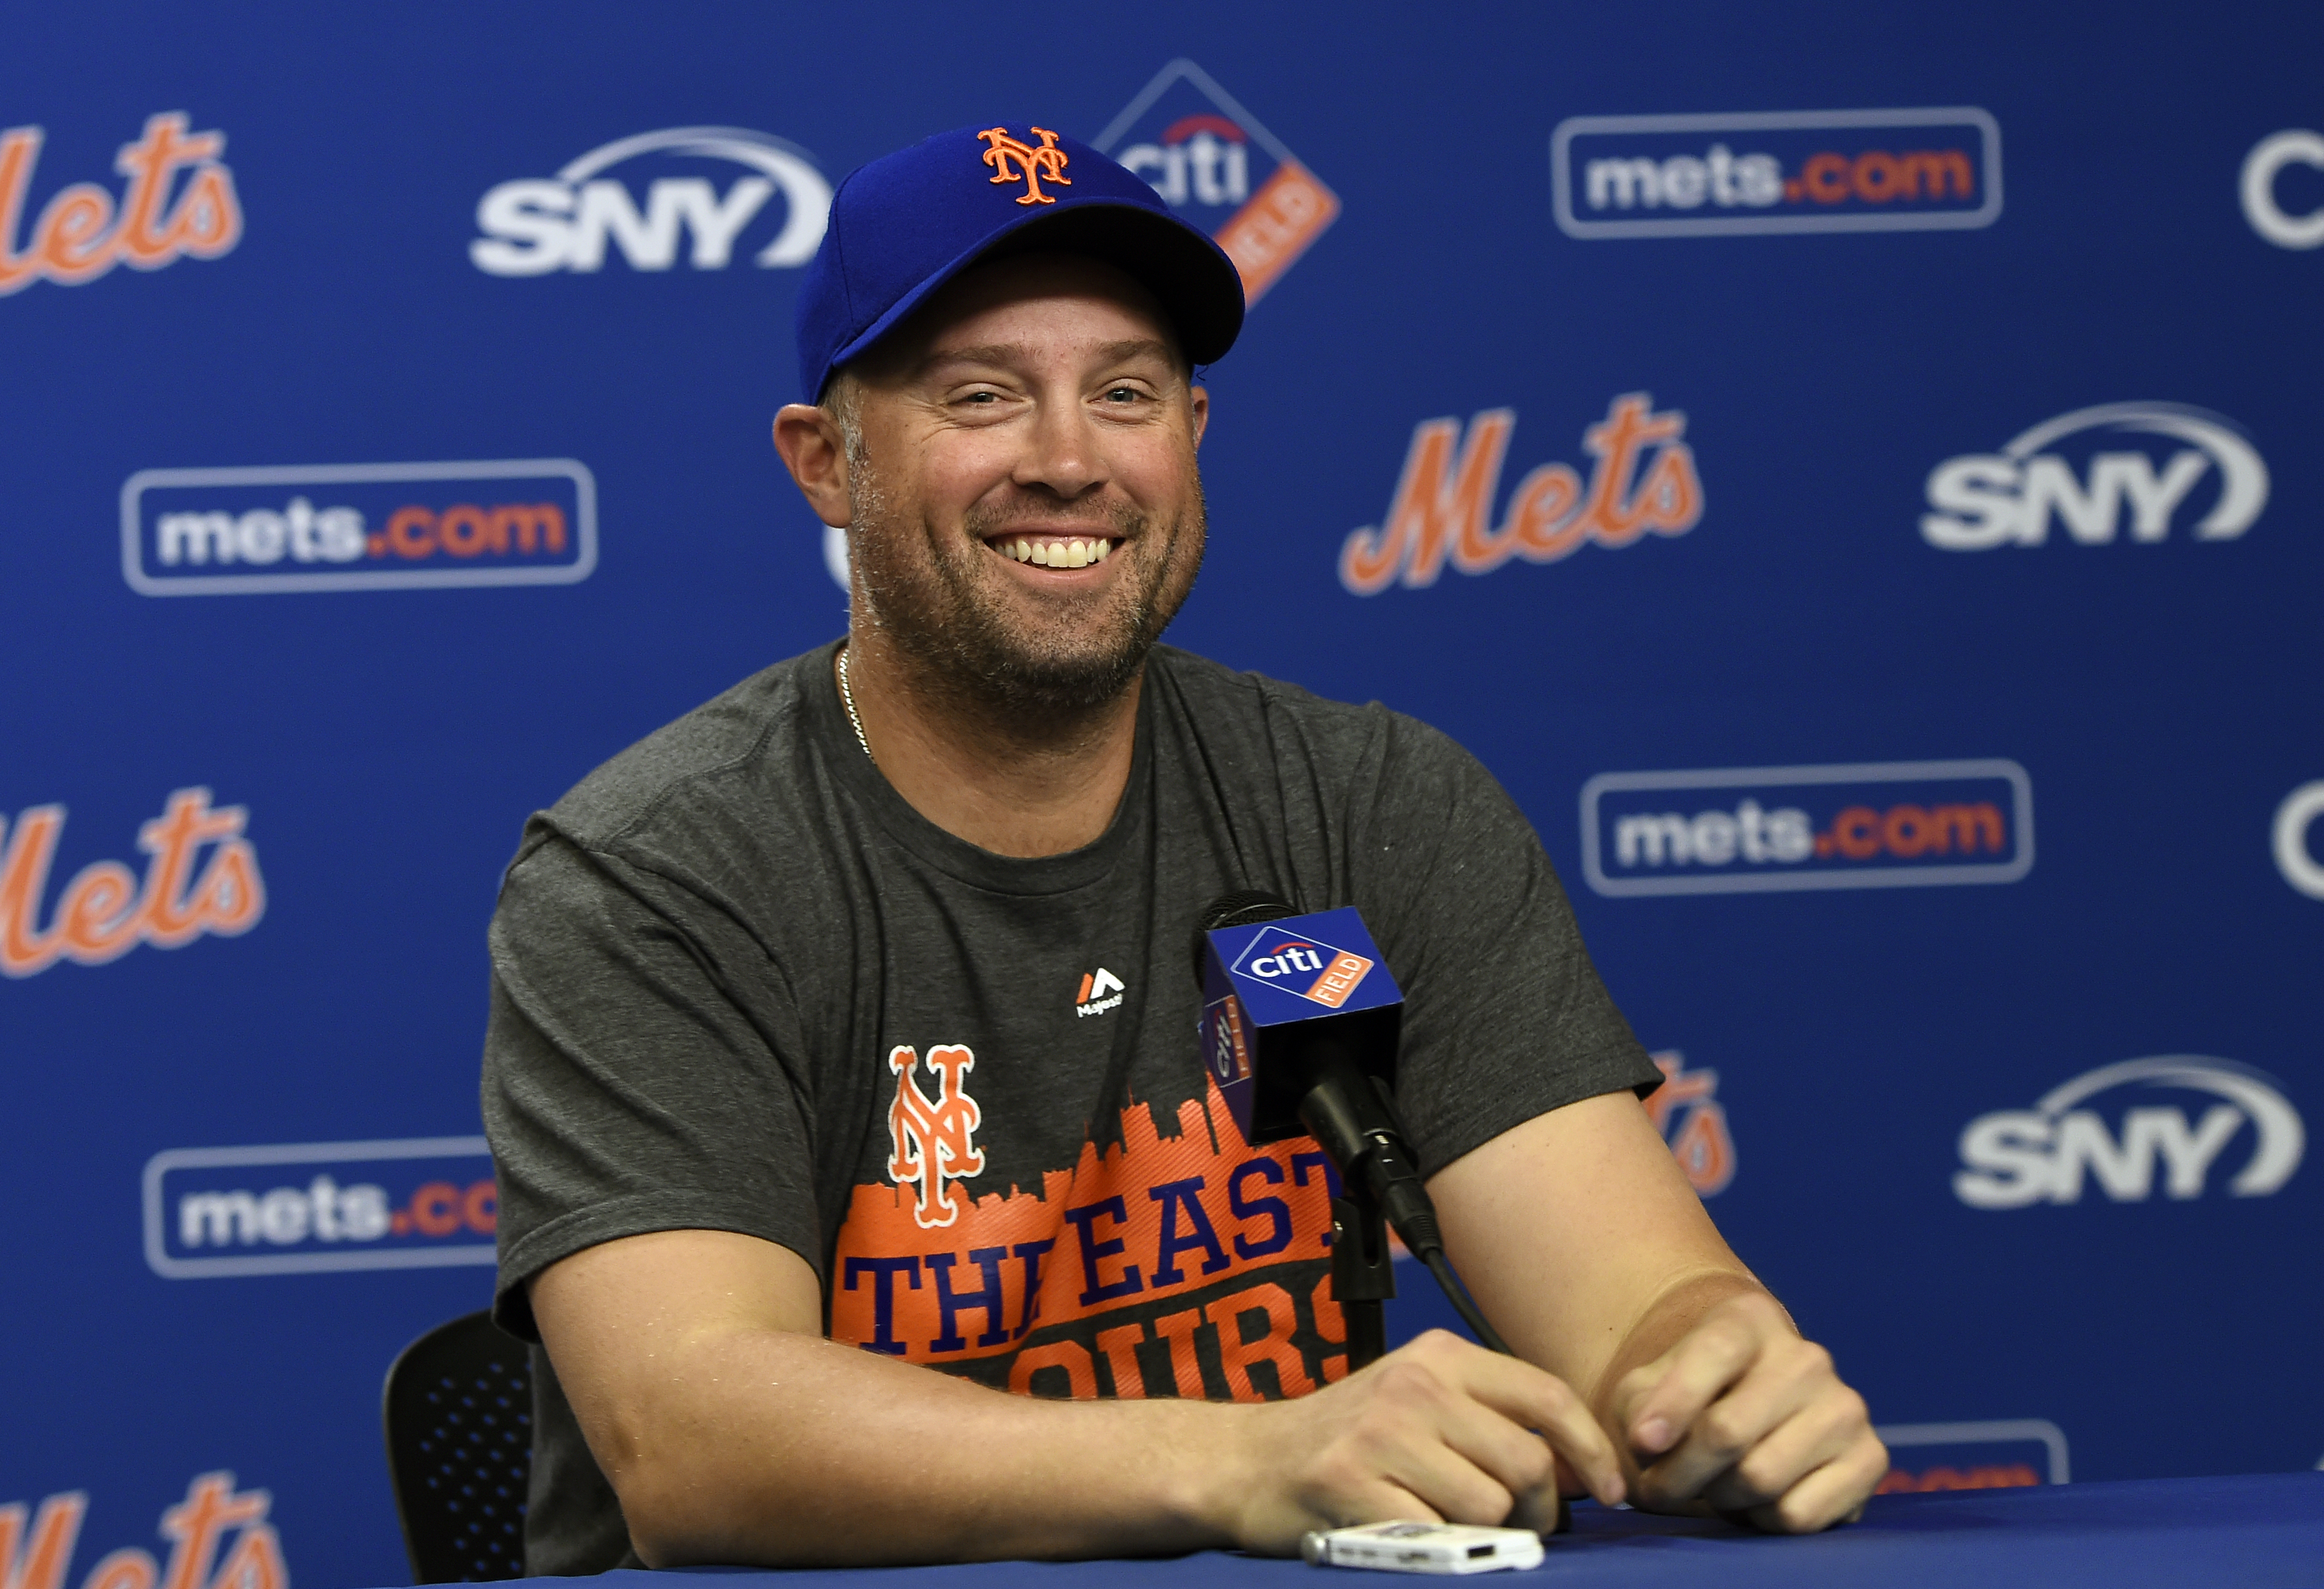 New York Mets' Michael Cuddyer smiles as he speaks to the media during a press conference prior today's workout at Citi Field for NLDS series against the Los Angeles Dodgers, Tuesday, Oct. 6, 2015, in New York. (AP Photo/Kathy Kmonicek)